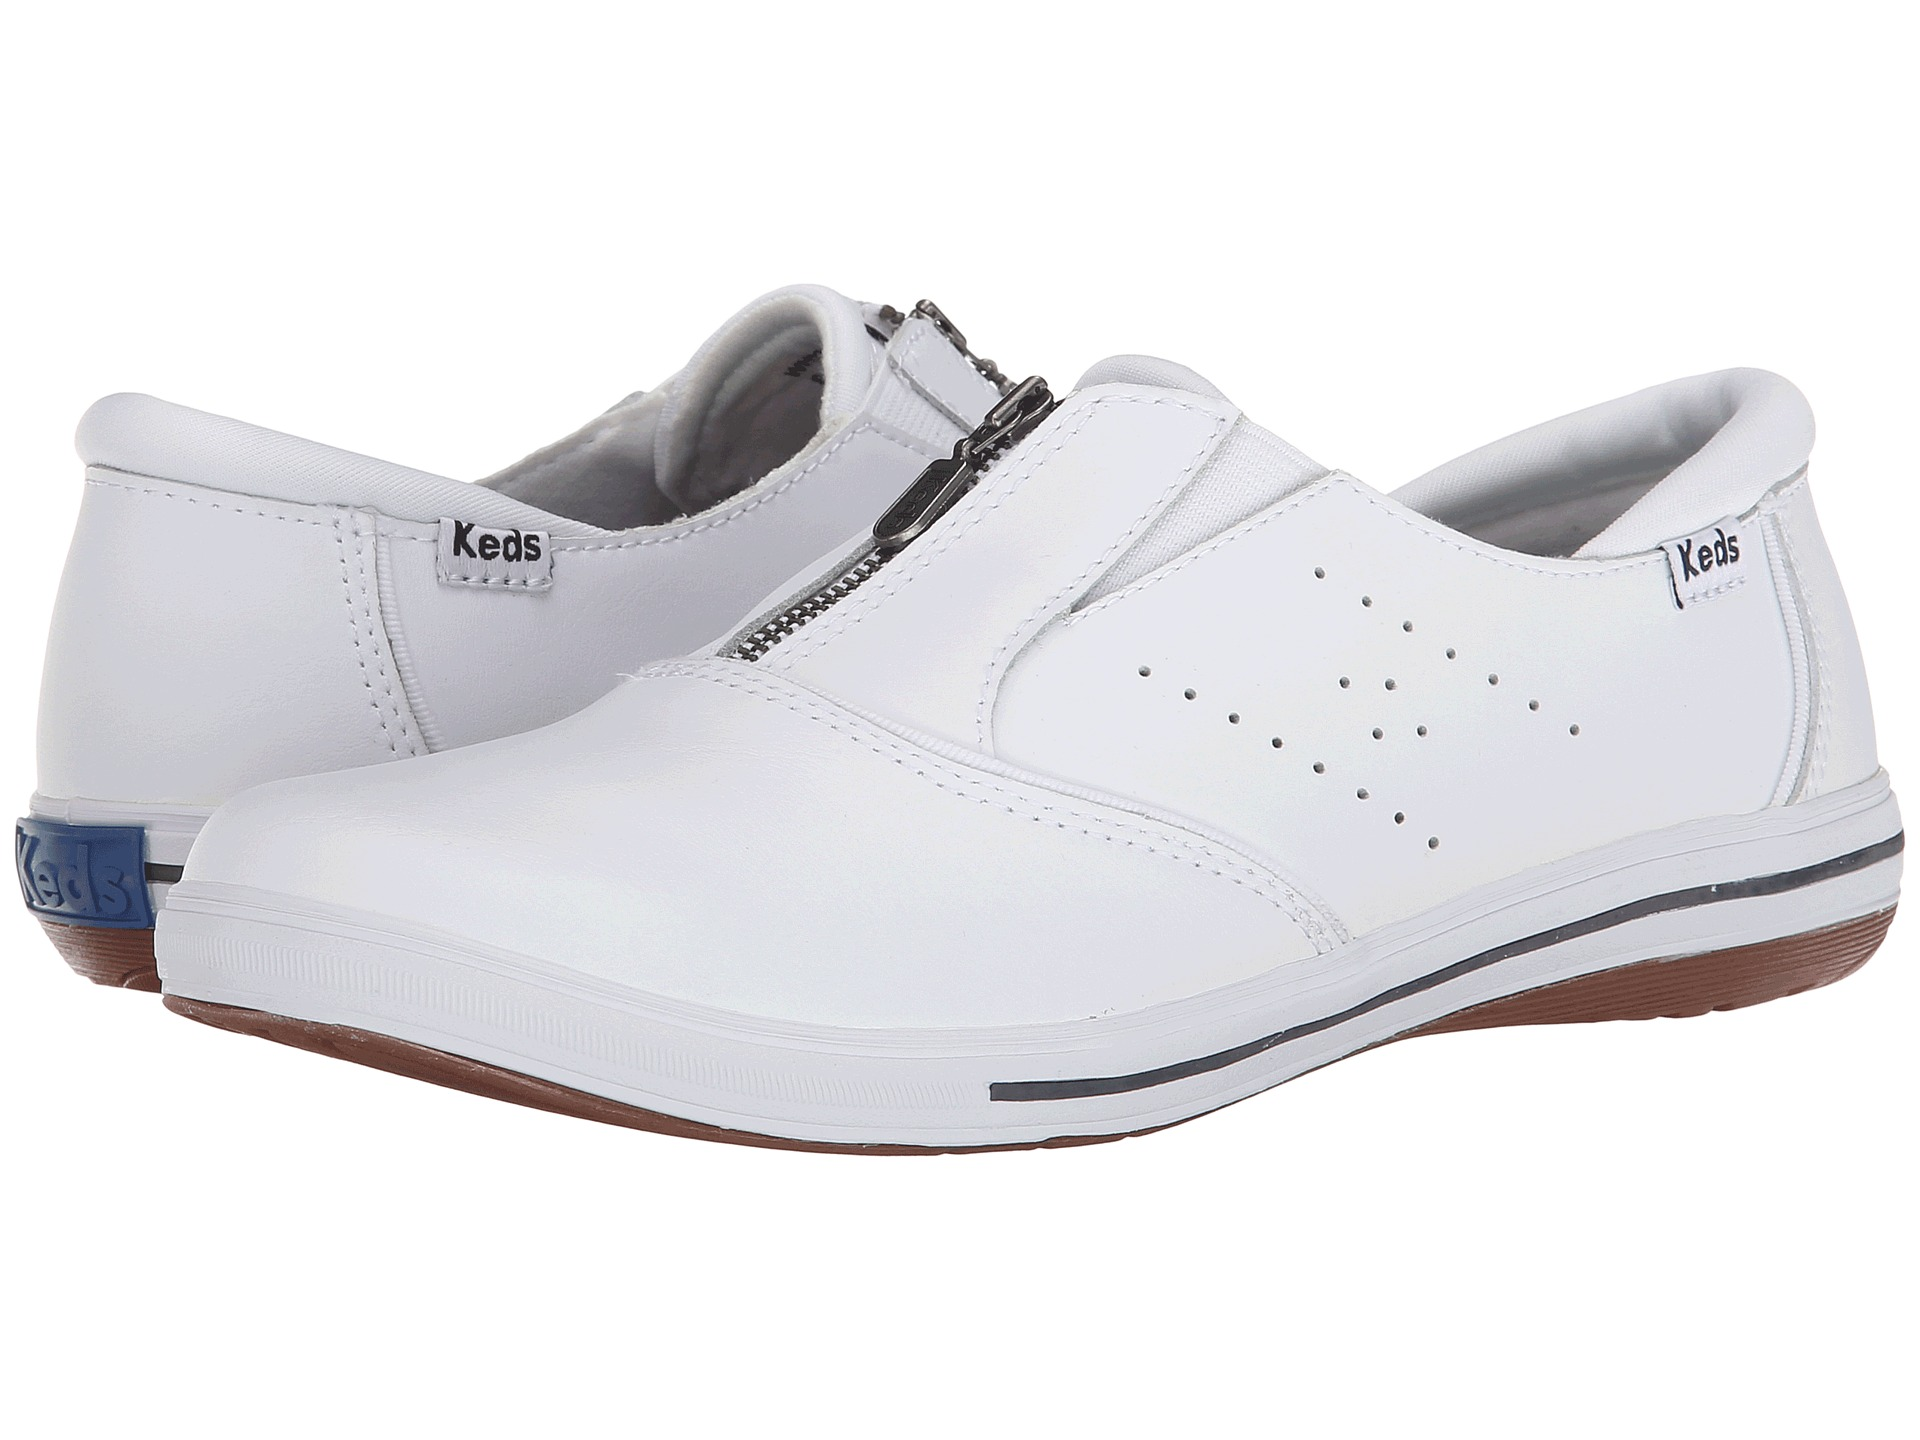 keds pacey zip smooth leather white zappos free